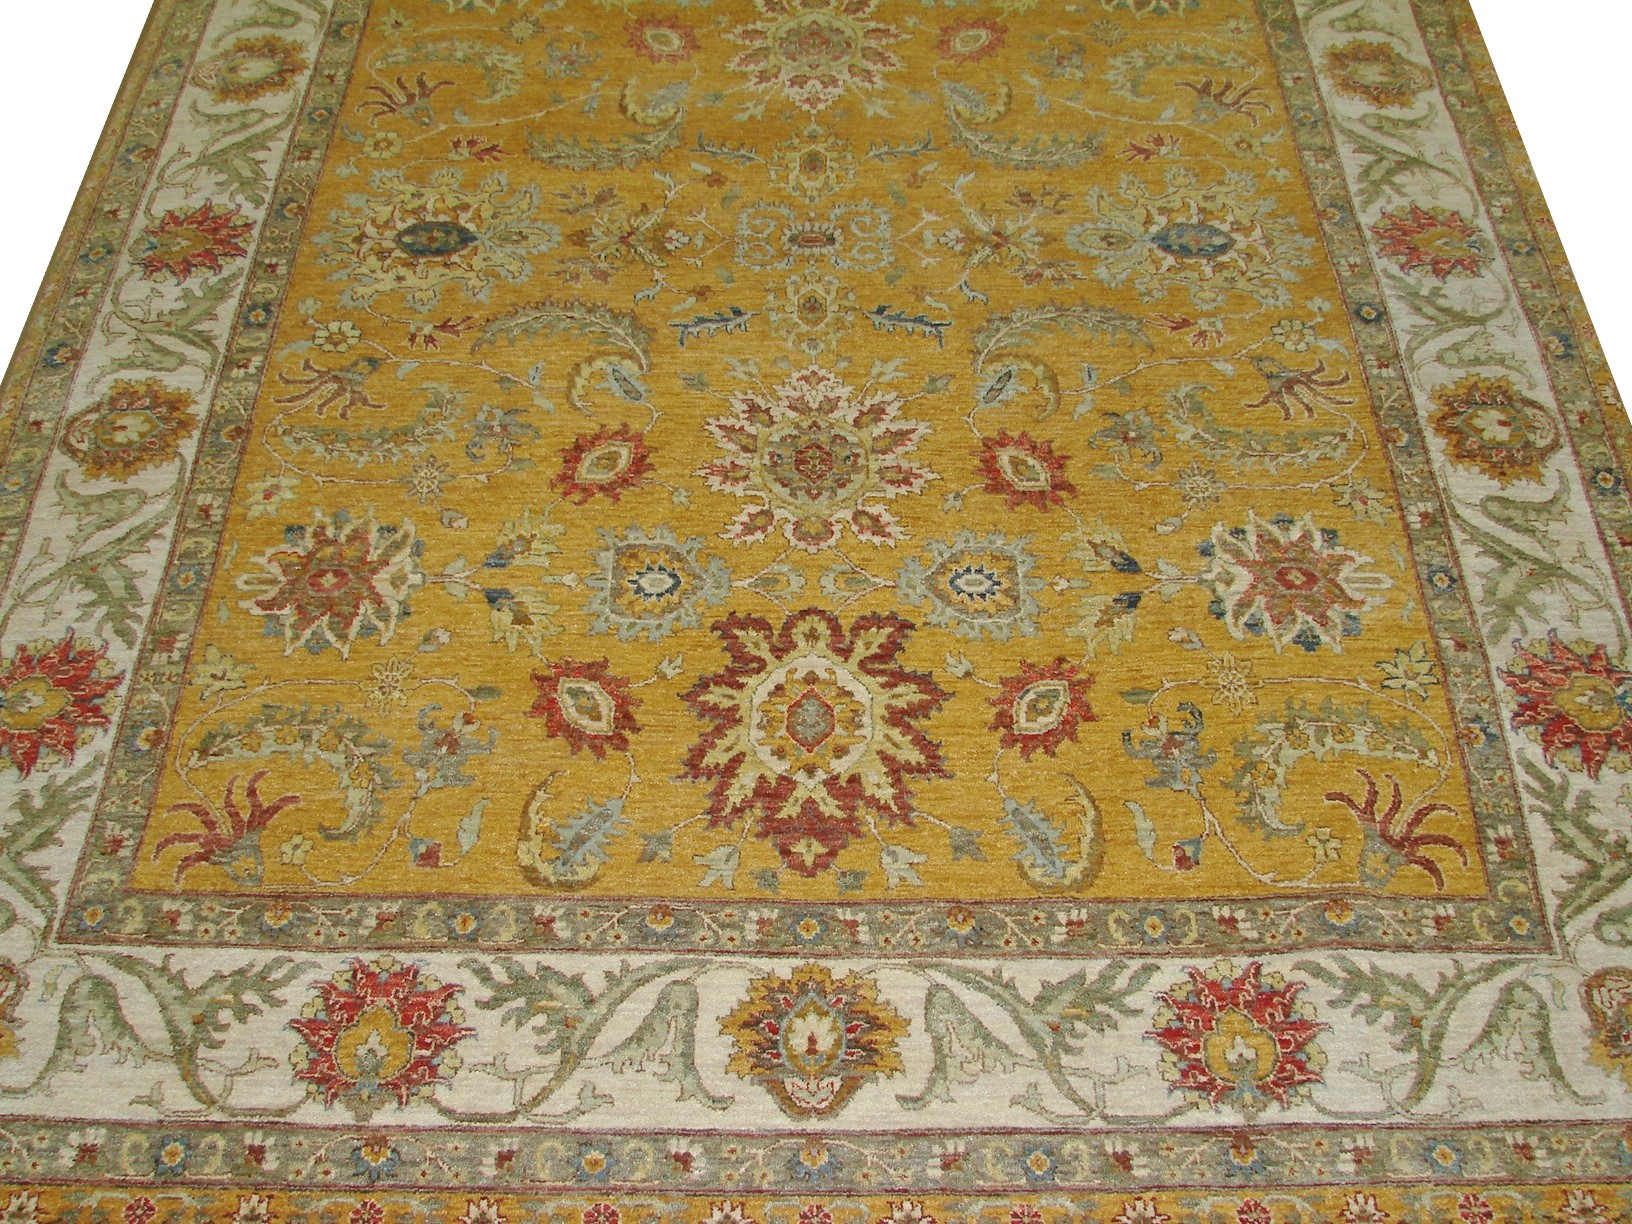 8x10 Traditional Hand Knotted Wool Area Rug - MR17961